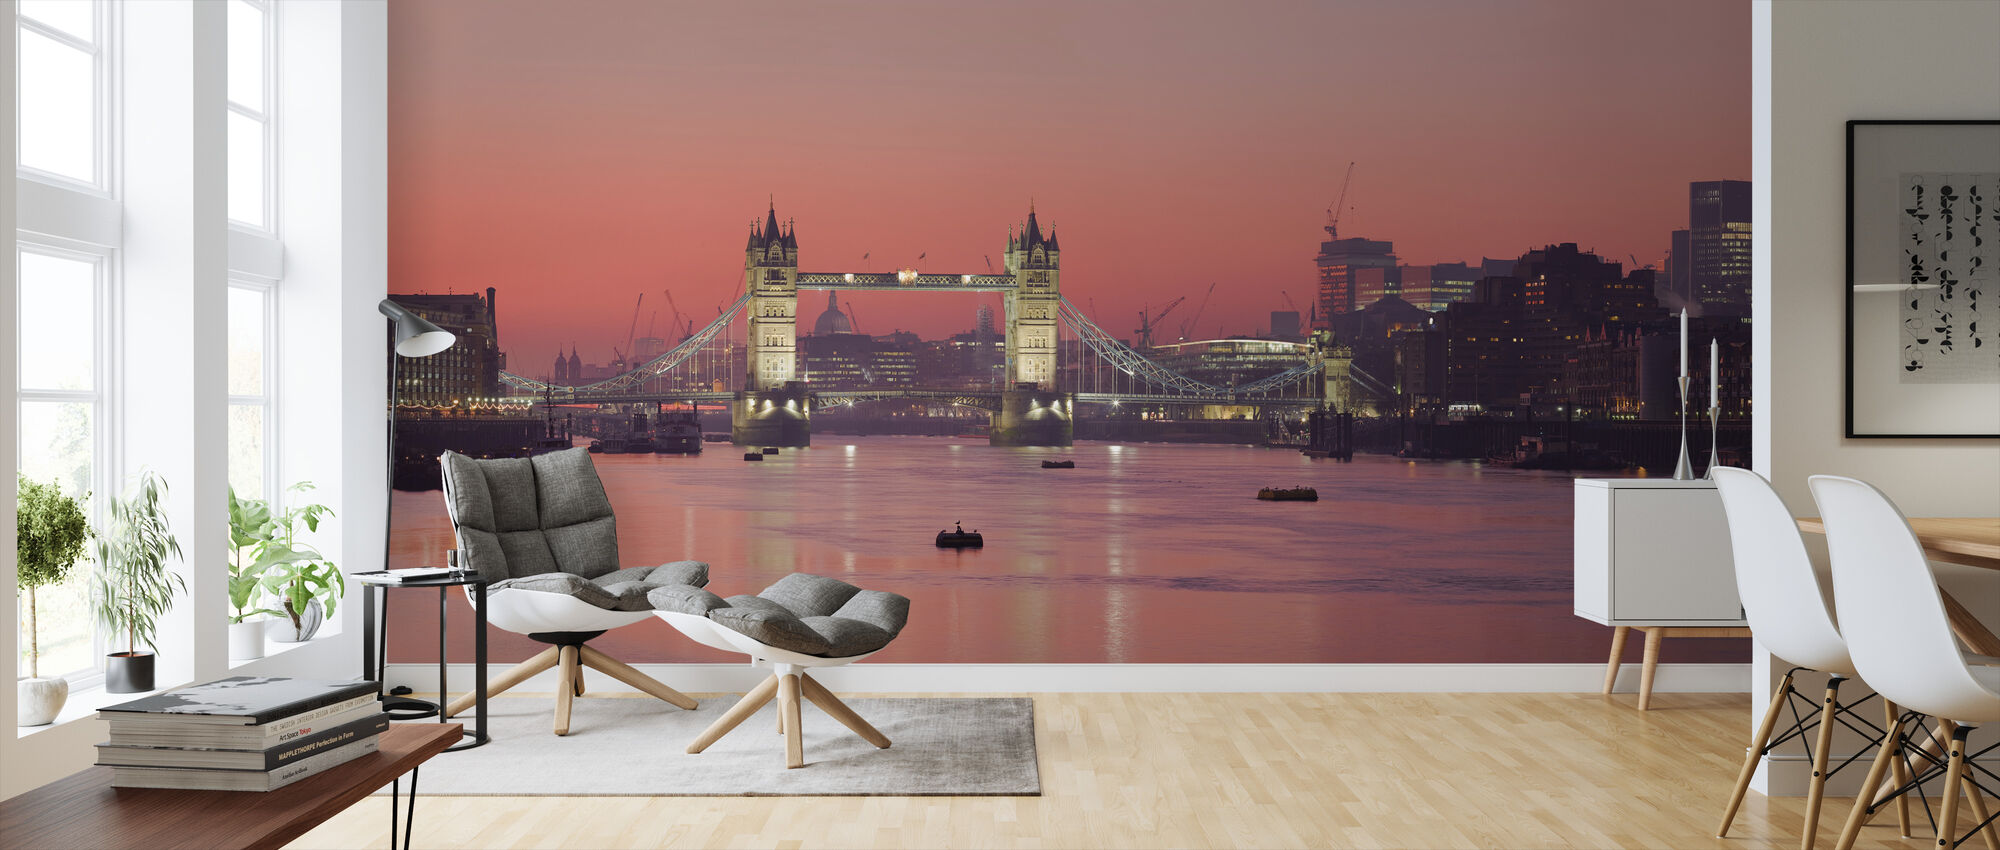 London Skyline in Sunset - Wallpaper - Living Room